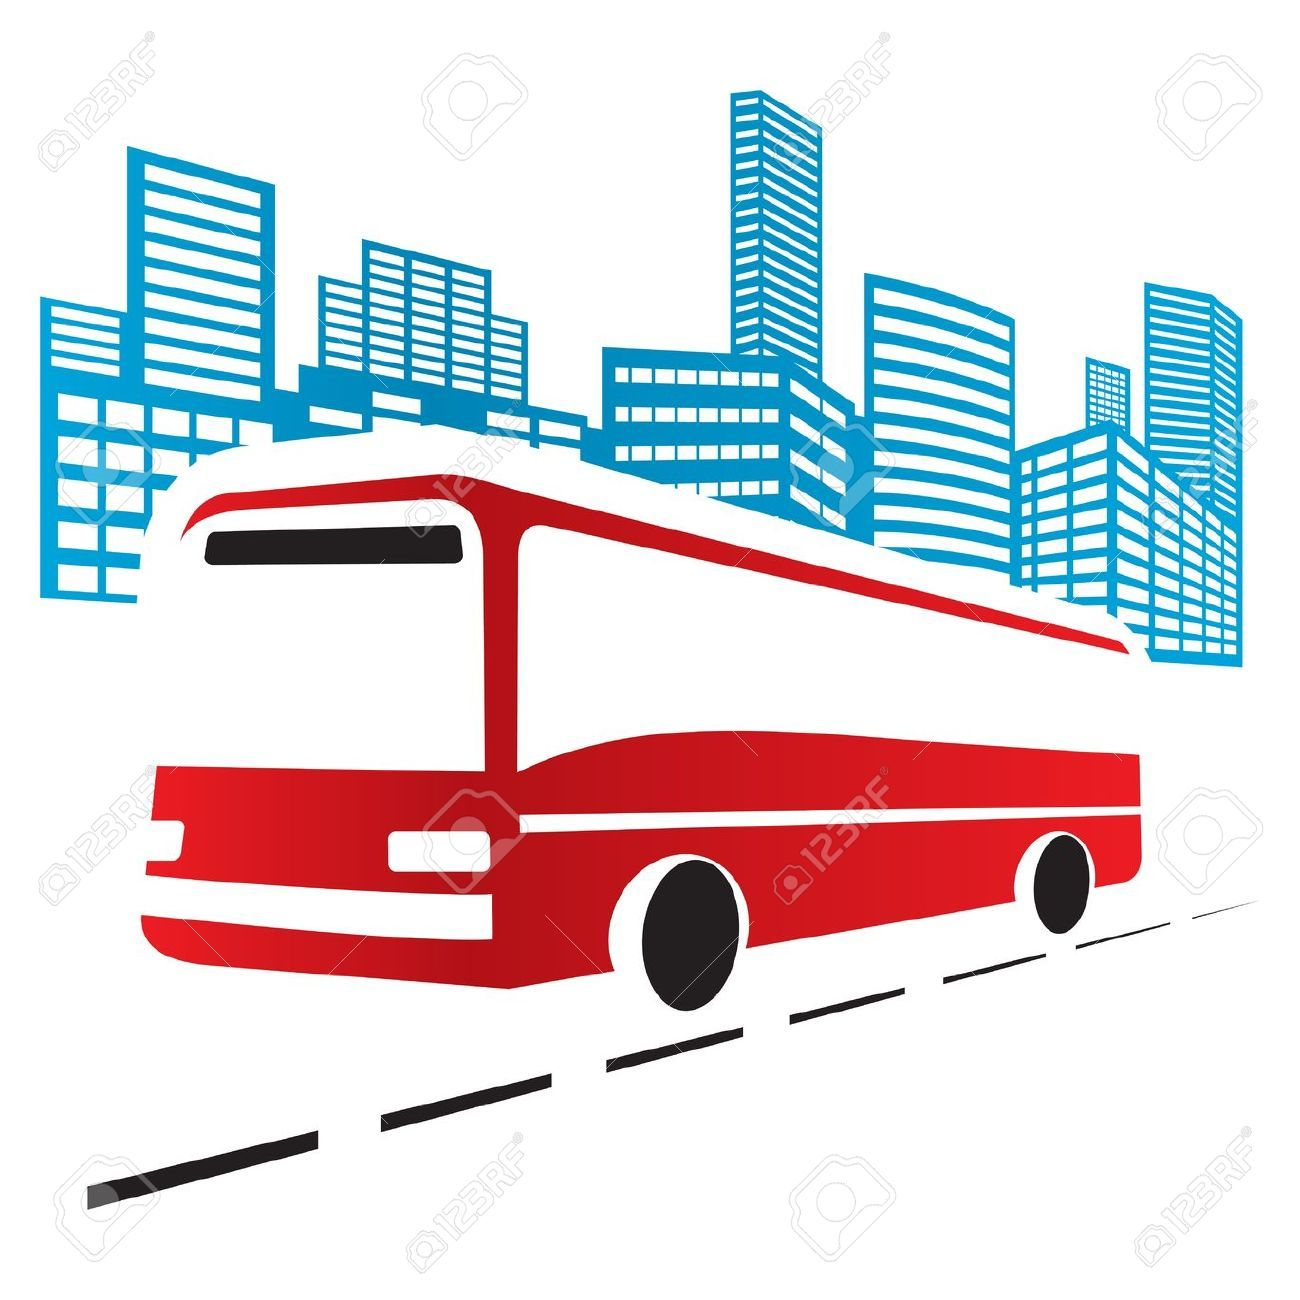 15028184 City Bus Stock Vector Bus Logo Transport Jpg 1300 1300 London City Bus Rapid Transit Bus